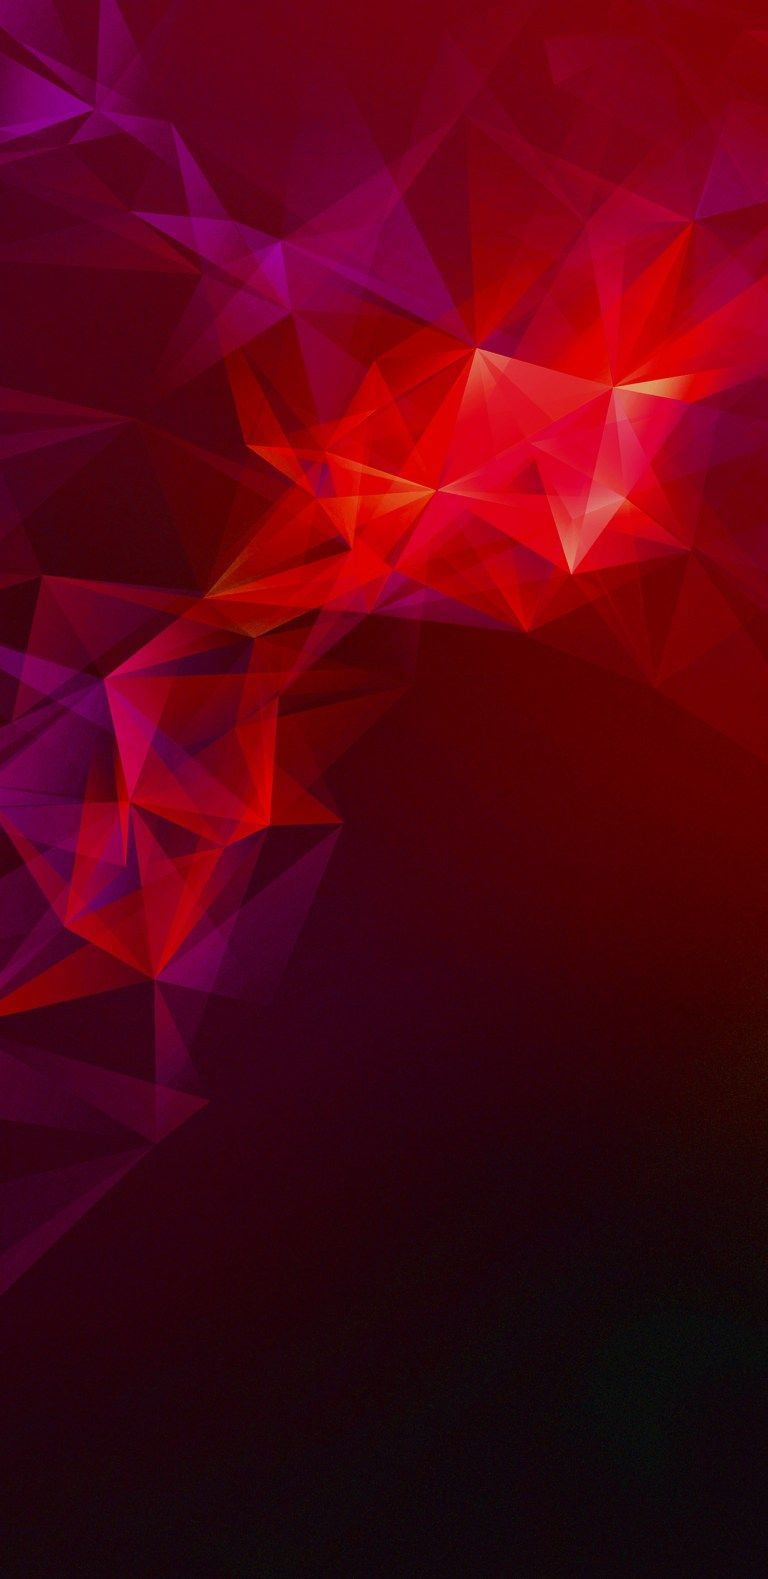 Official Wallpaper 08 Of 15 For Samsung Galaxy S9 And Samsung Galaxy S9 With Dark Red Polygons Hd Wallpapers Wallpapers Download High Resolution Wallpape Samsung Galaxy Wallpaper Samsung Wallpaper New Wallpaper Iphone